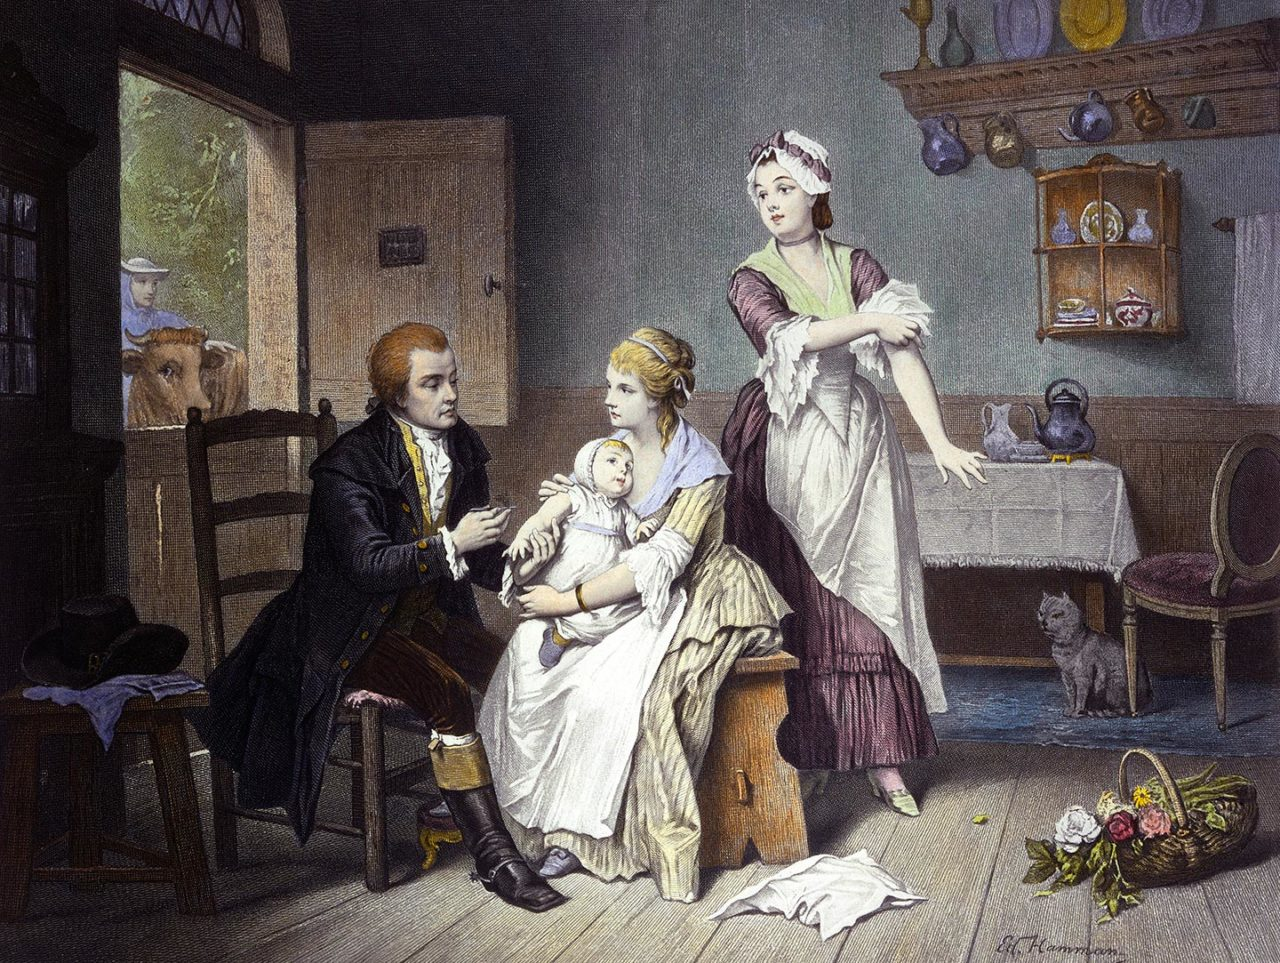 https://thesubmarine.it/wp-content/uploads/2017/07/Edward_Jenner_vaccinating_his_young_child_held_by_Mrs_Jenn_Wellcome_L0011550-1280x963.jpg